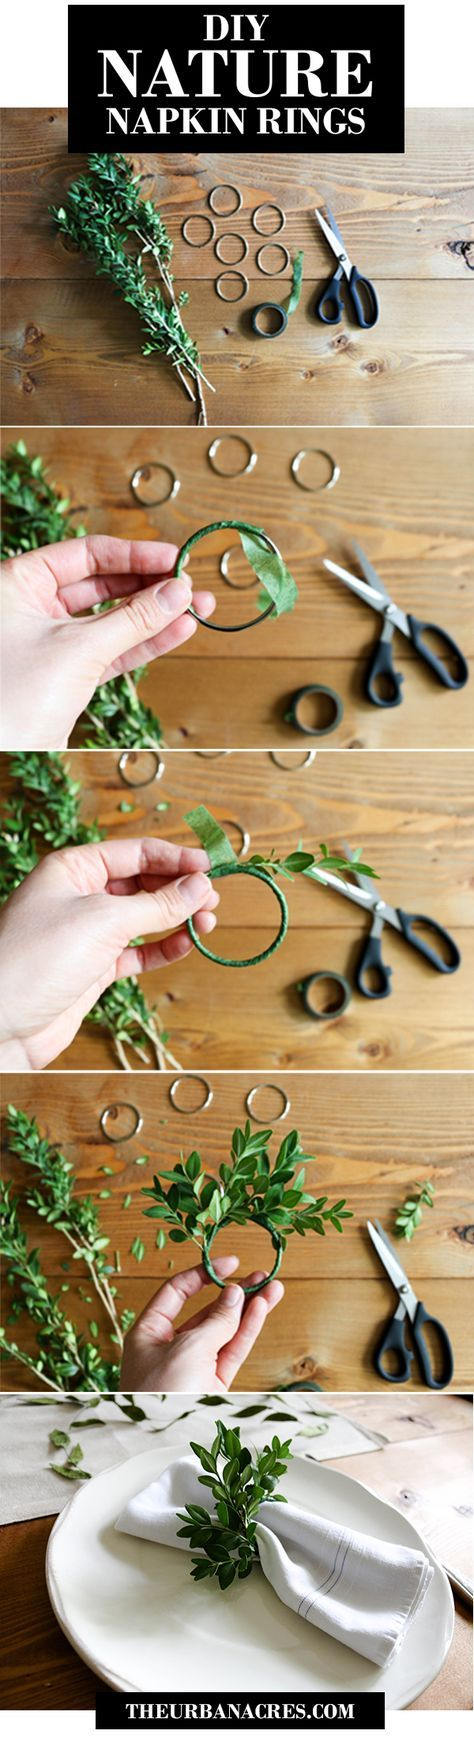 DIY Nature Napkin Rings for your table